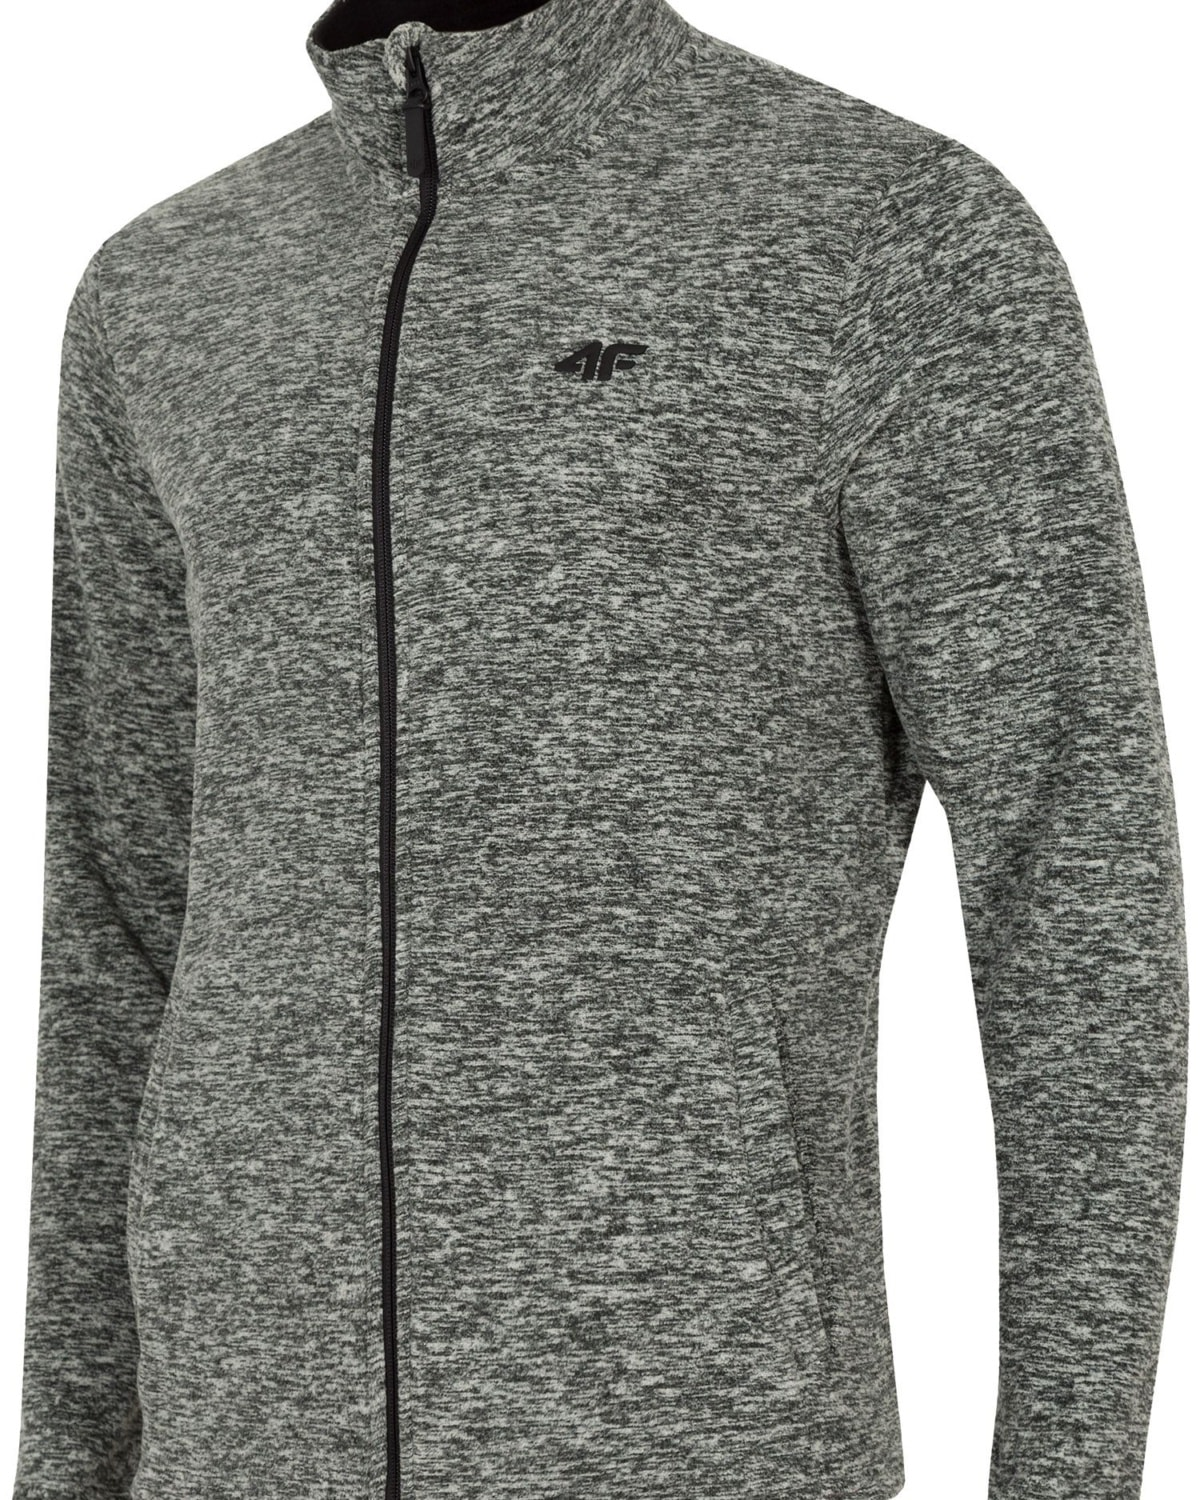 4F Fleece Men – Grey Melange D4Z18PLM300-24M c